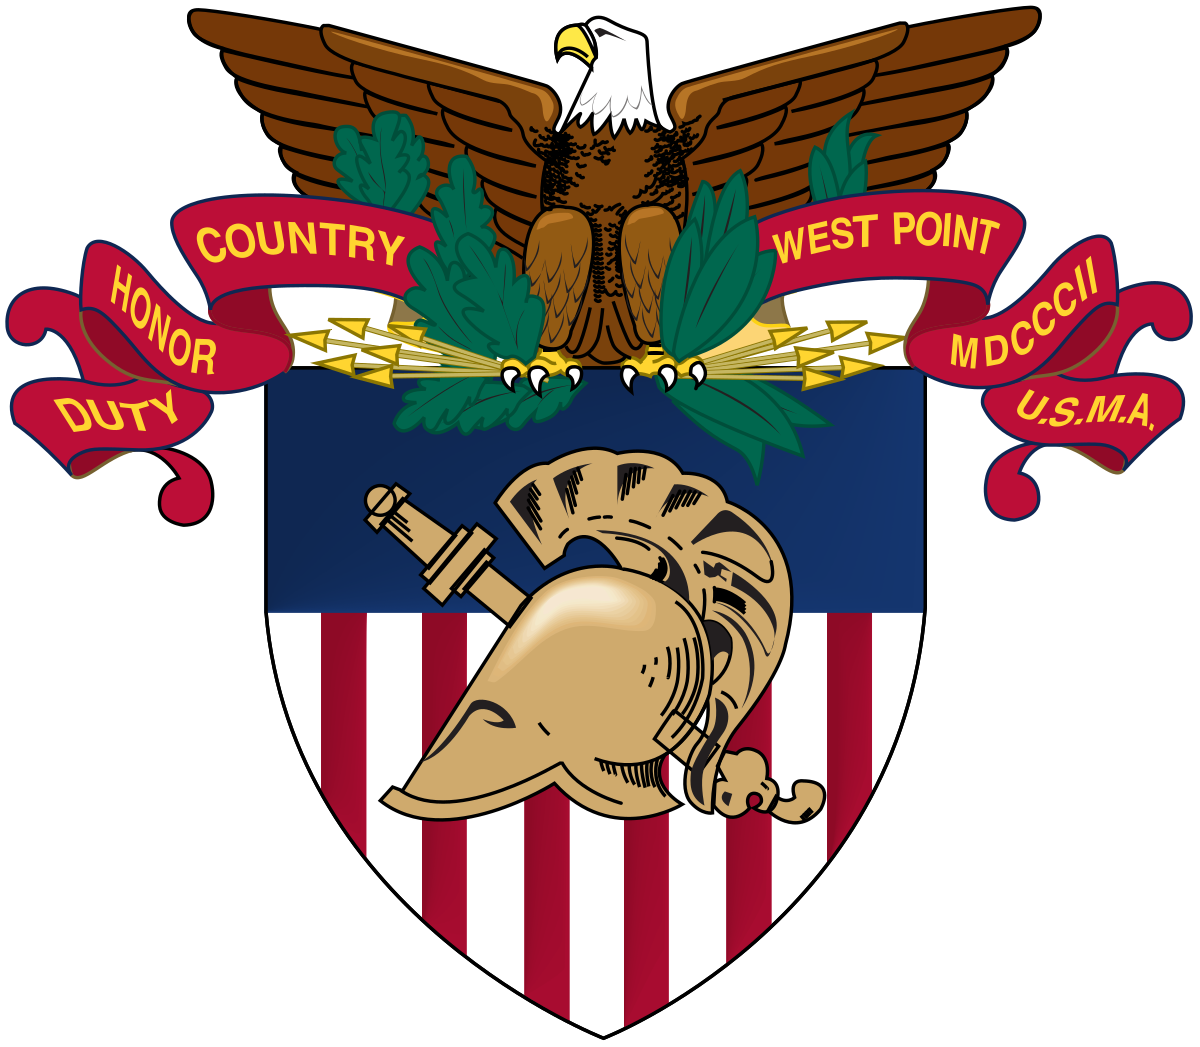 military logo, united states military academy wikipedia #25289